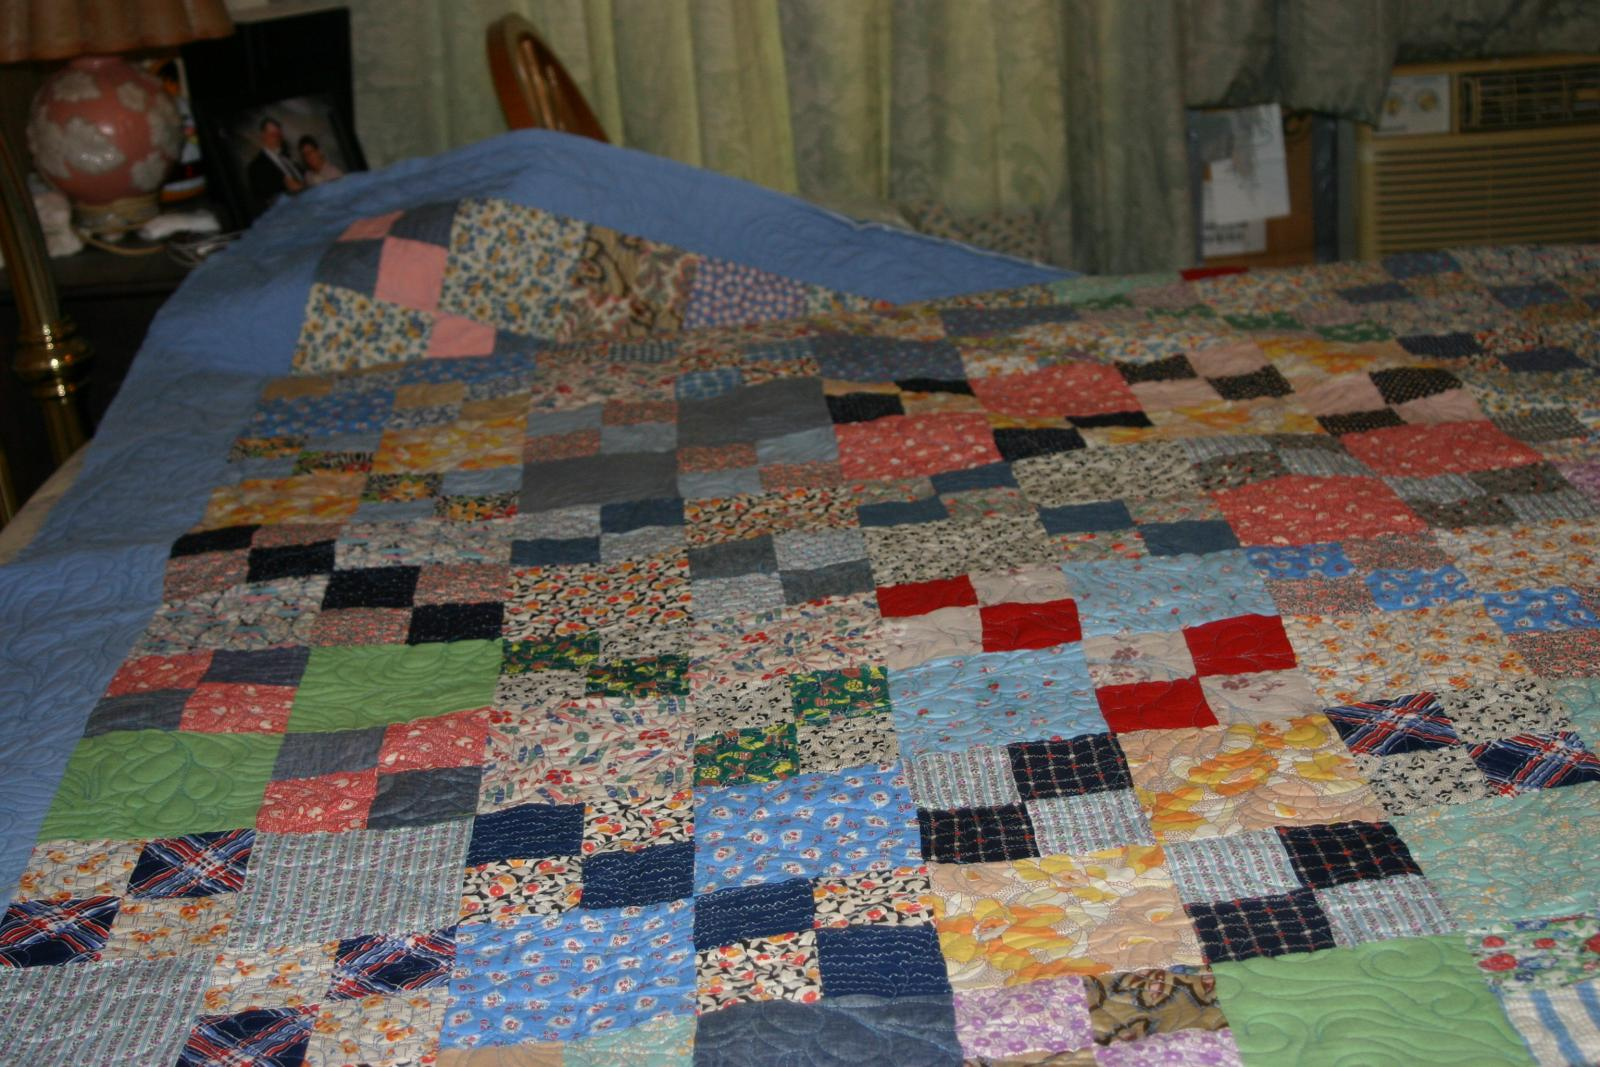 Ruthie's quilts